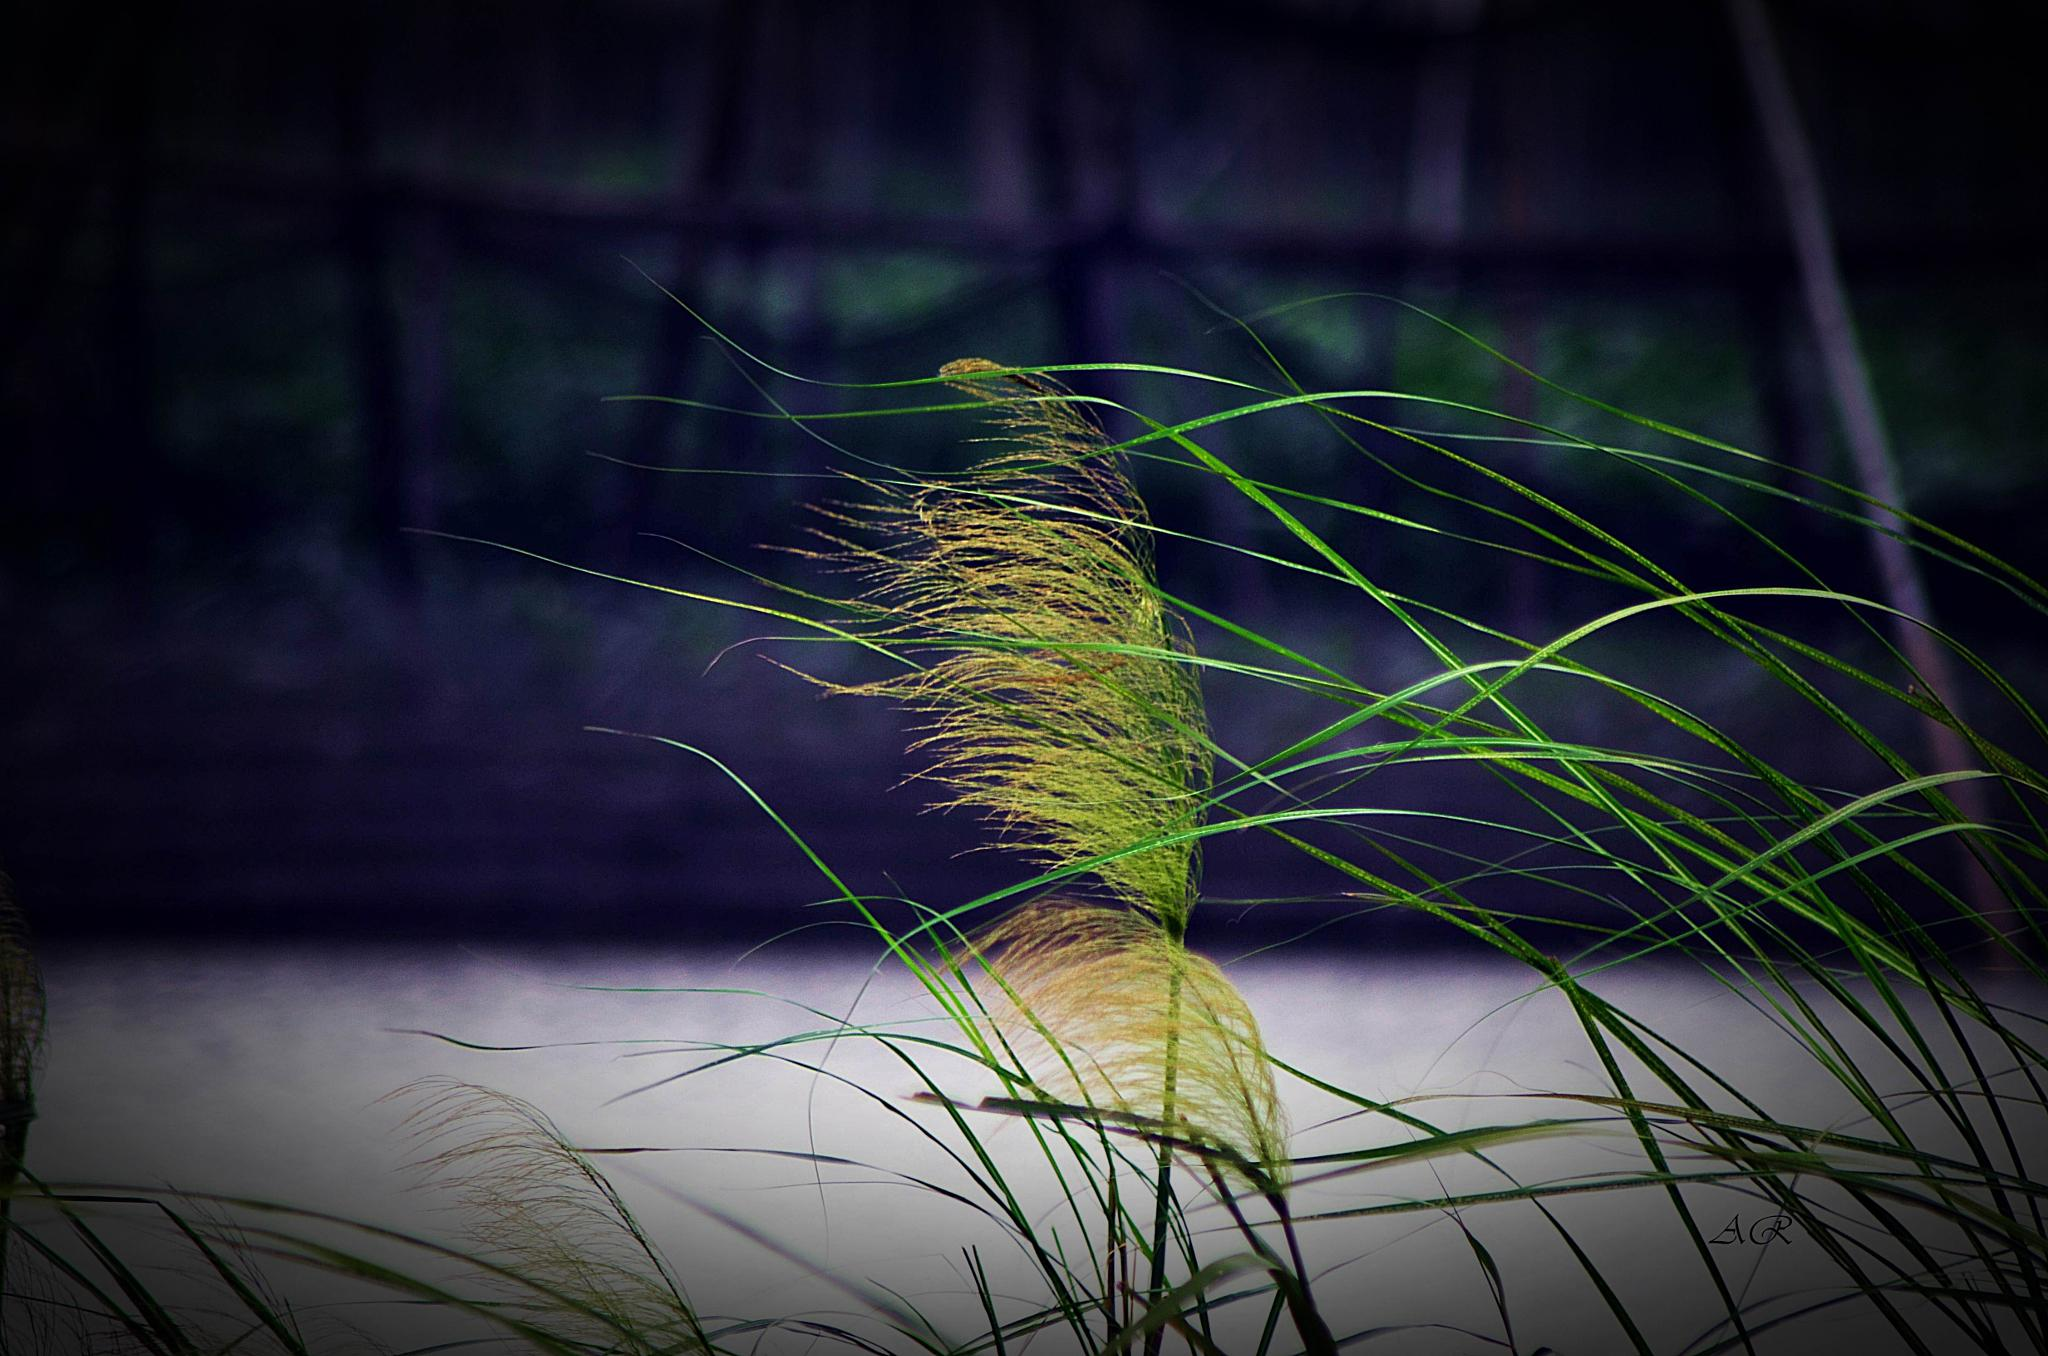 Feel the Breeze  by Ahsanul Rony